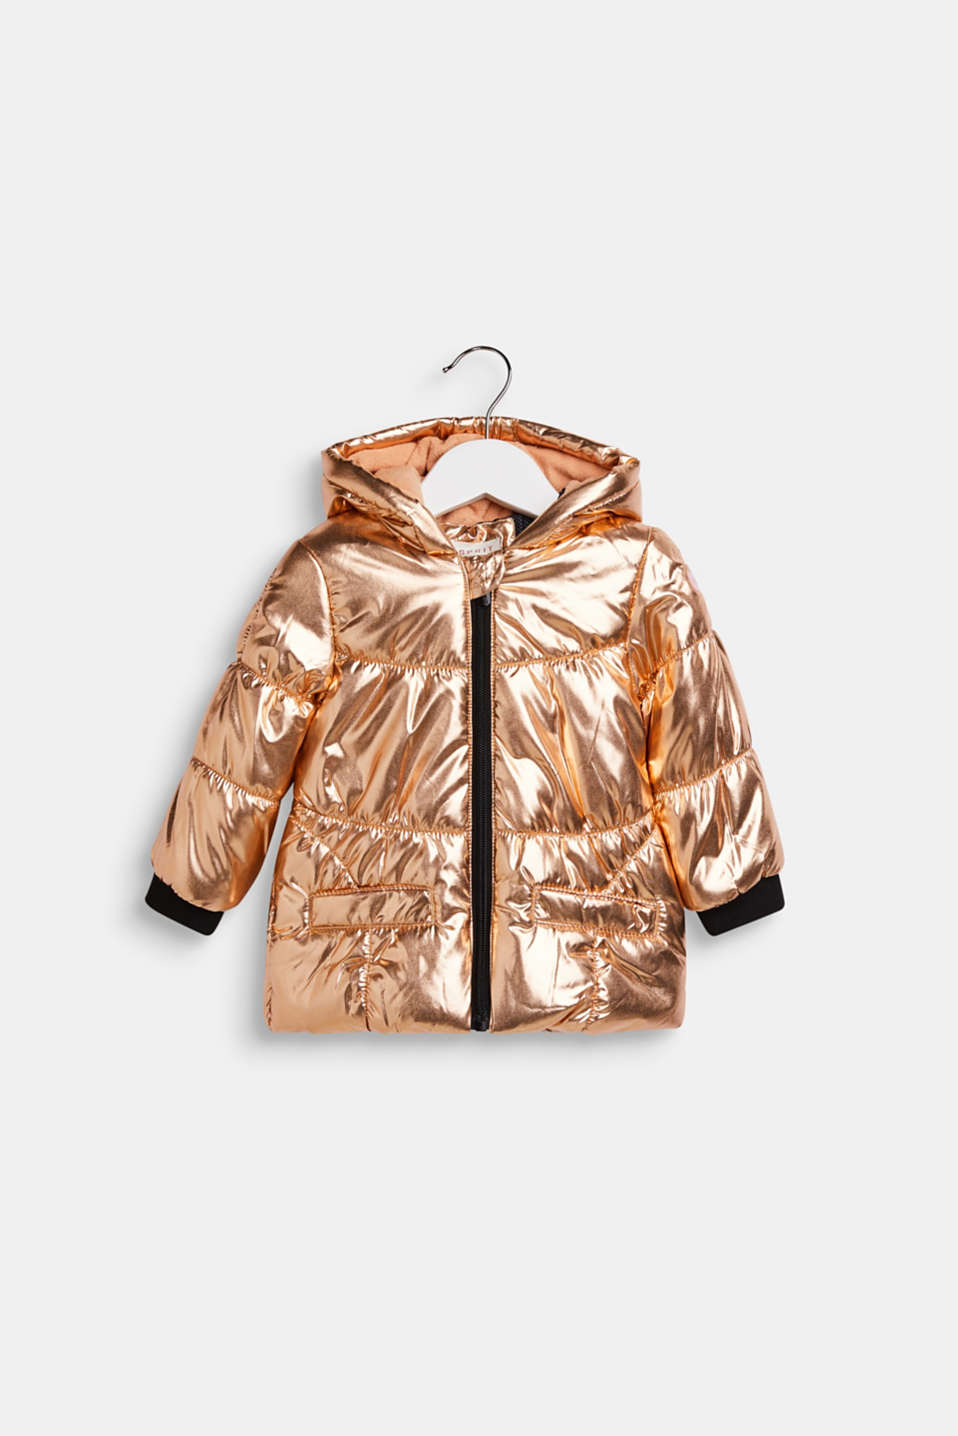 Esprit - Warme Steppjacke in Metallic-Optik